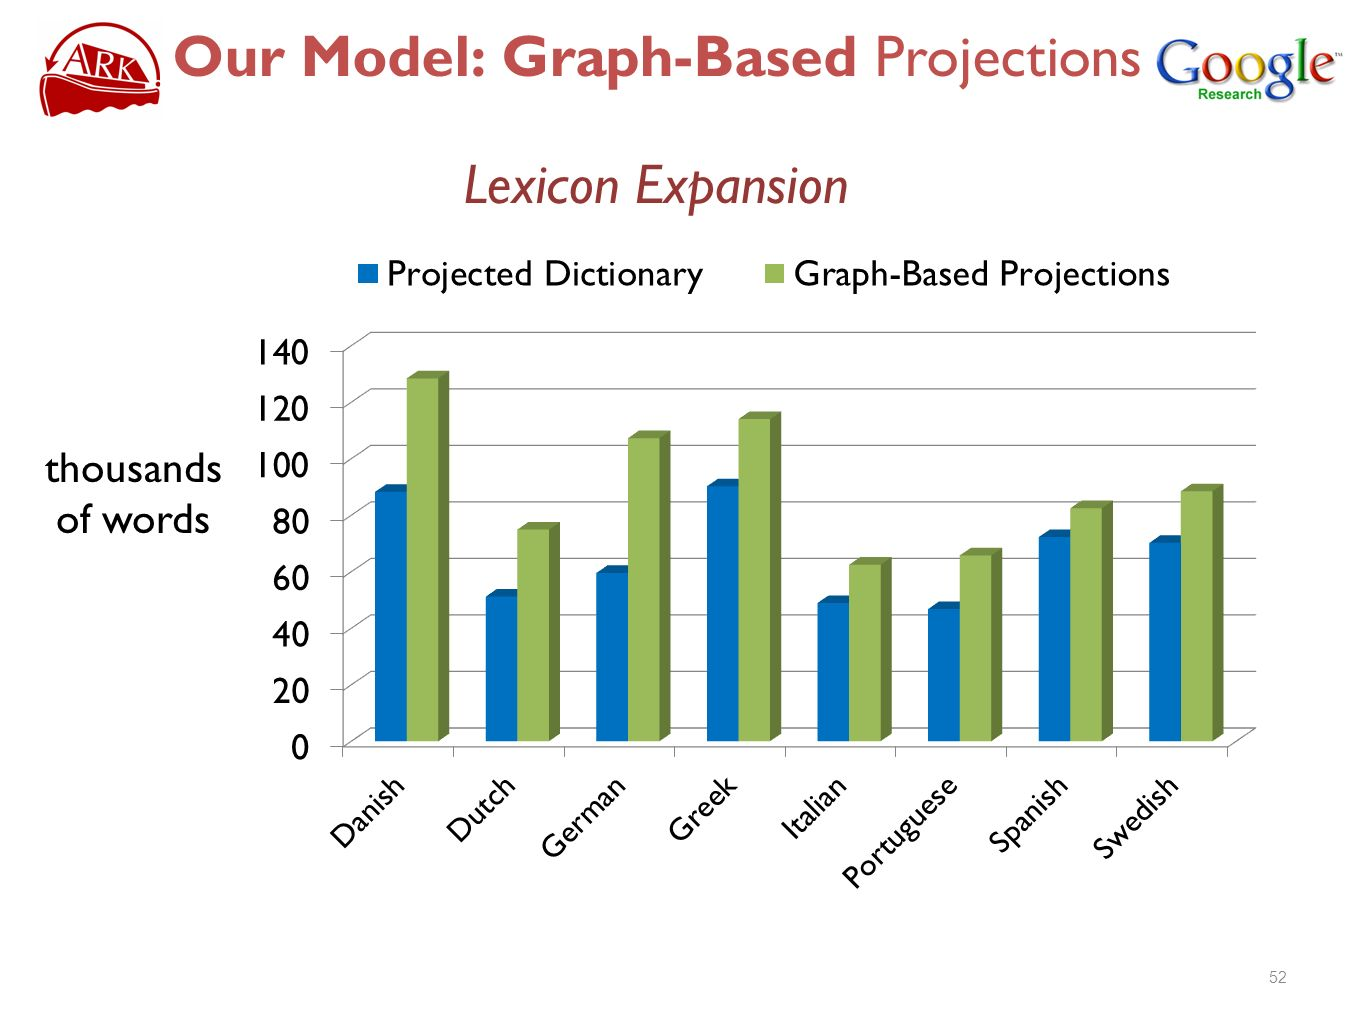 Our Model: Graph-Based Projections